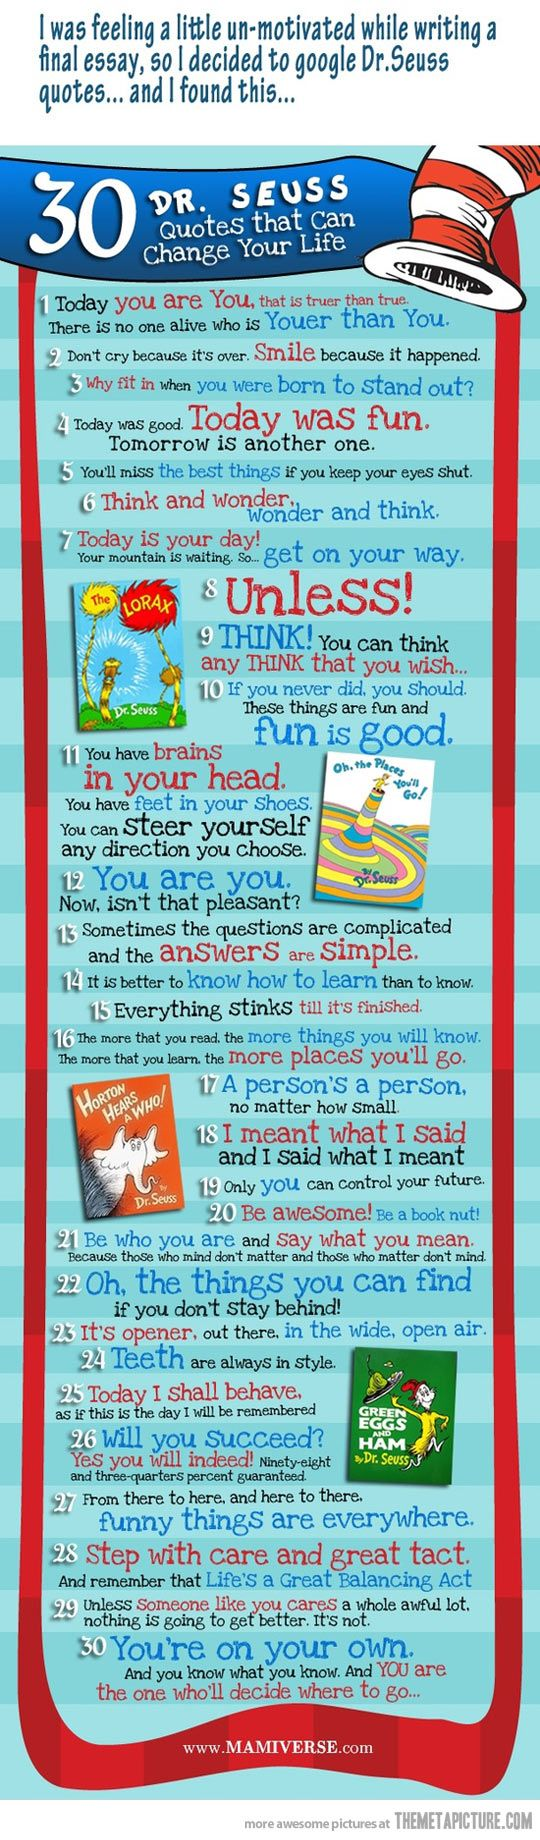 best images about happy birthday dr seuss dr 17 best images about happy birthday dr seuss dr suess the lorax and dr seuss